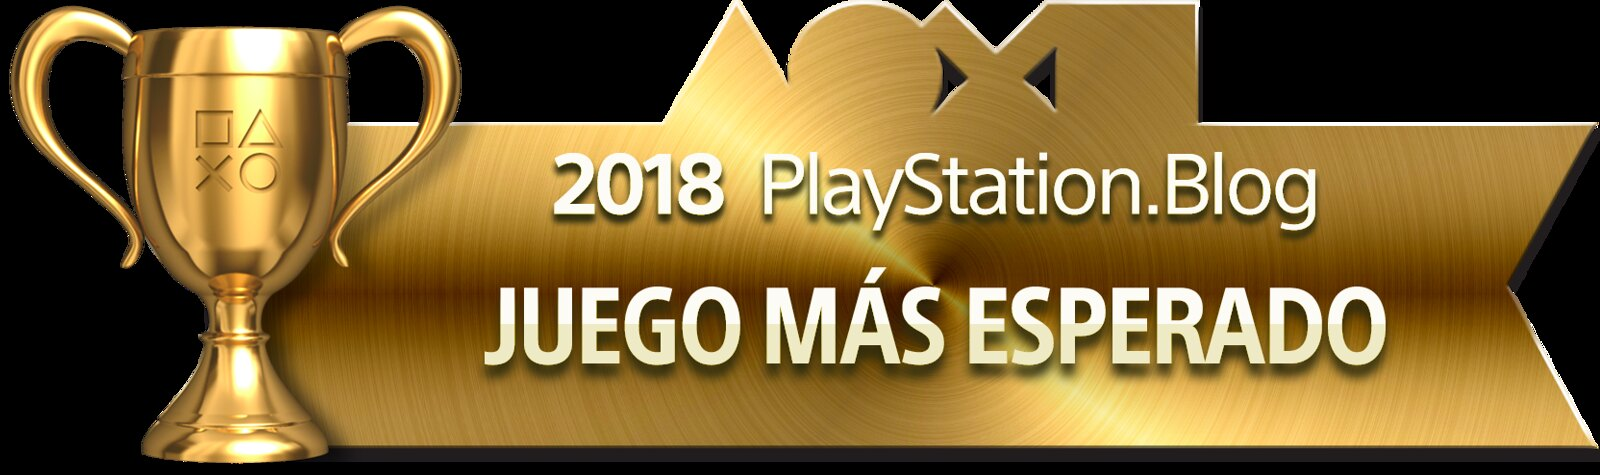 Most Anticipated Game - Gold